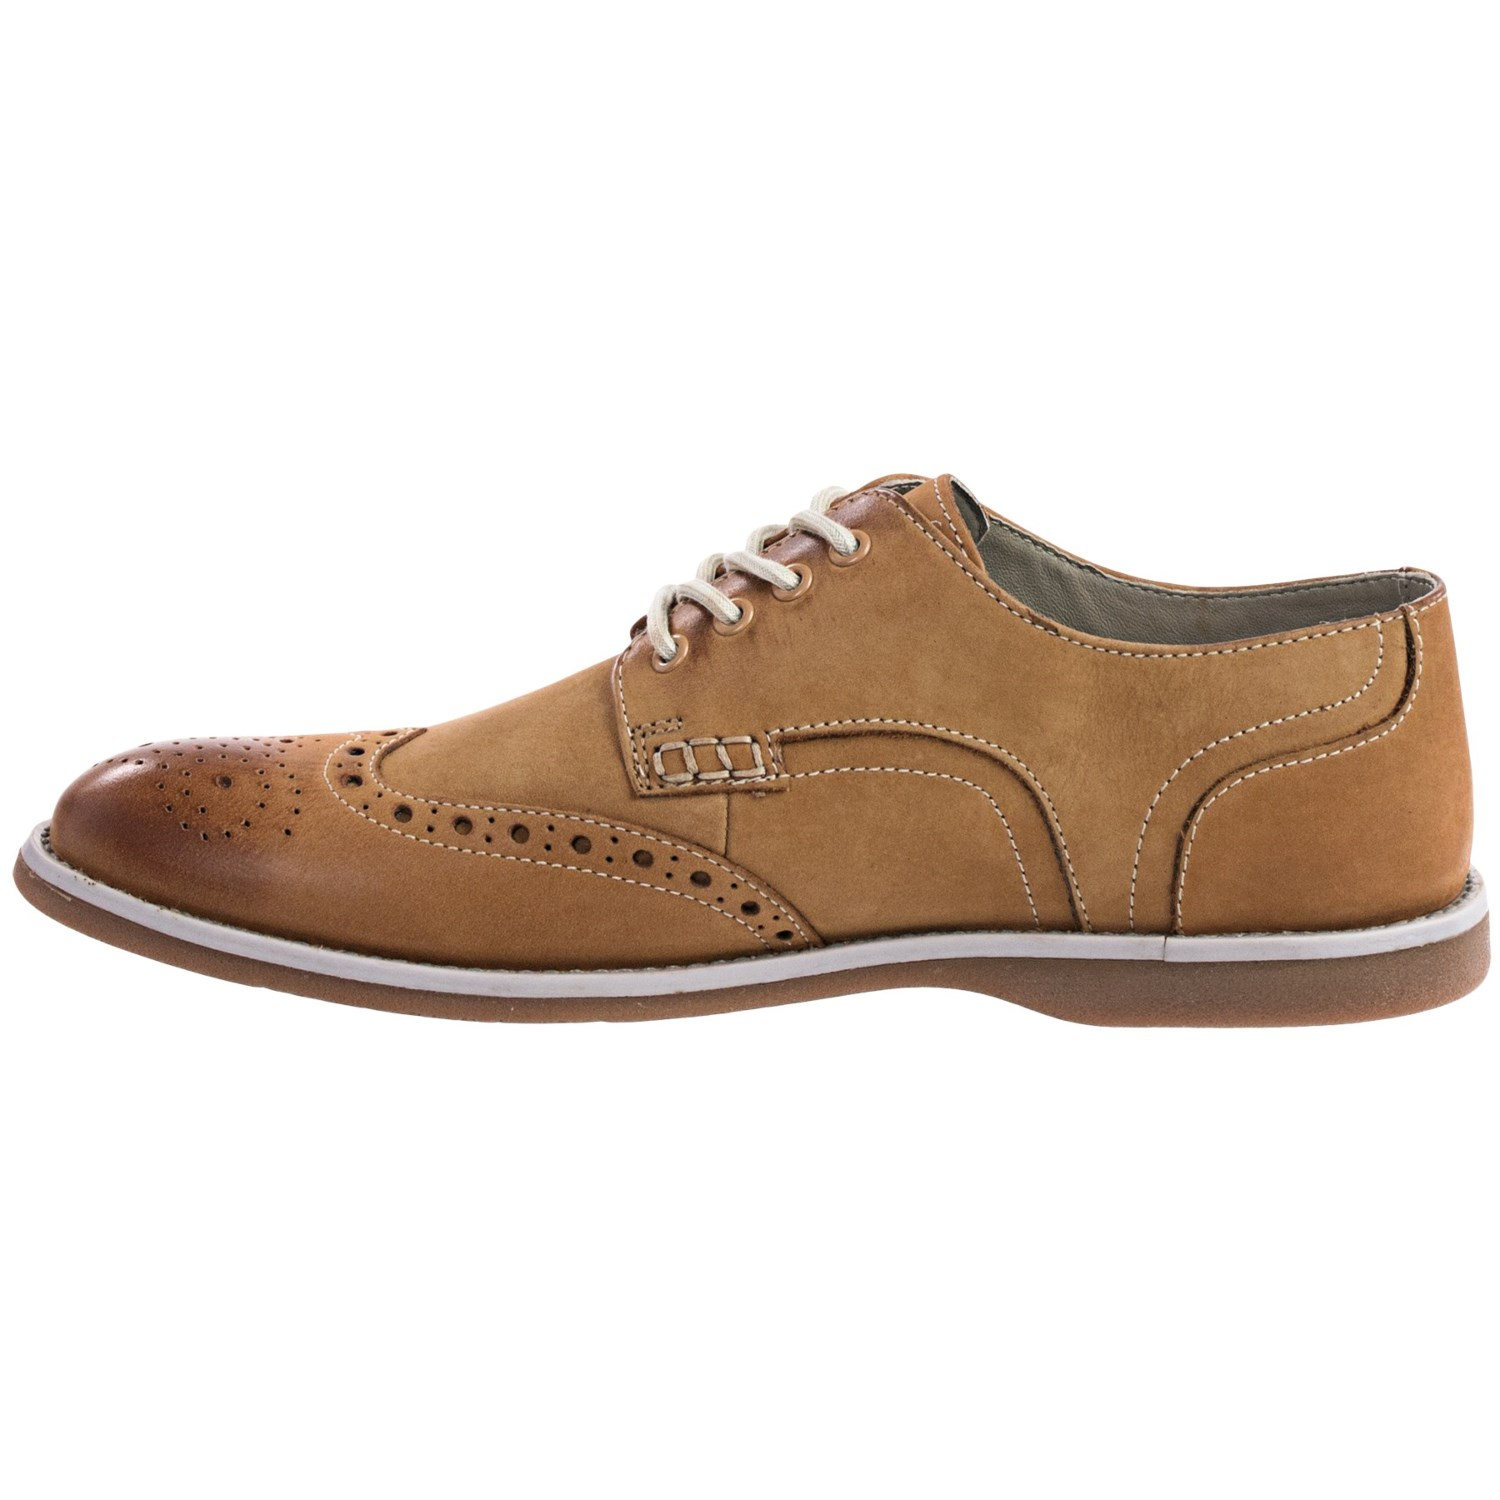 Clarks Shoes Leather Source